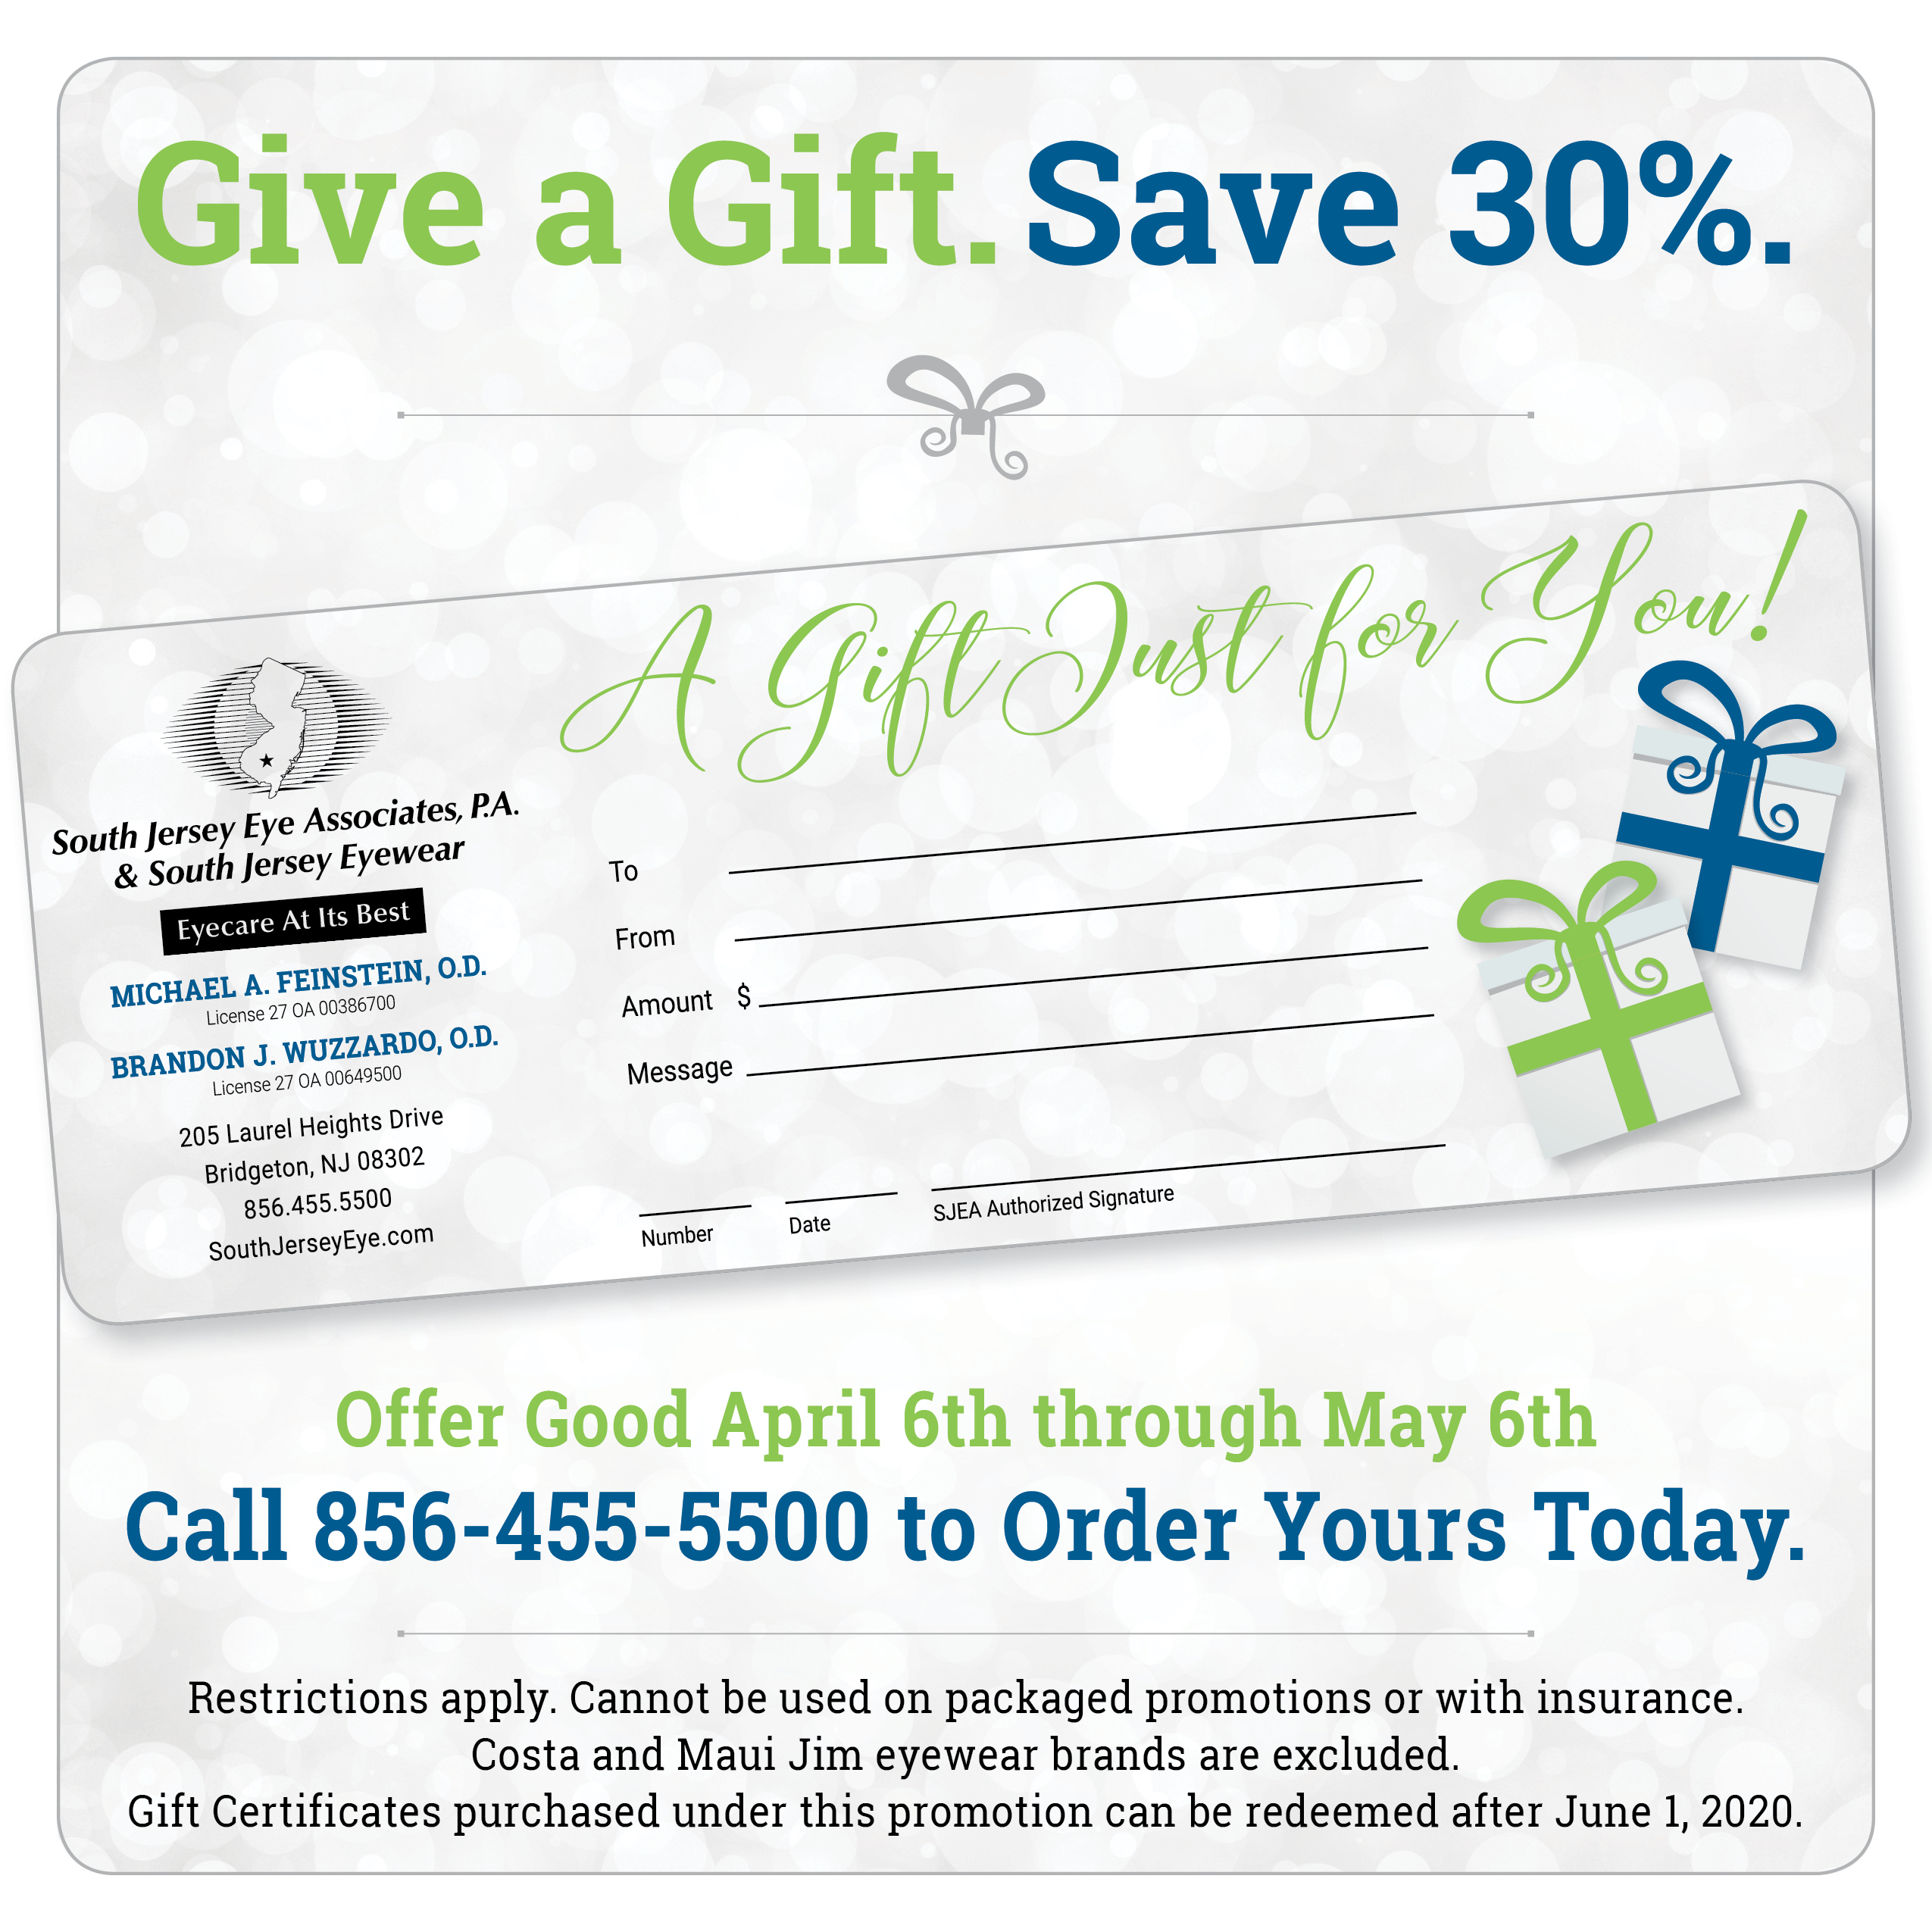 Give a Gift. Save 30%.